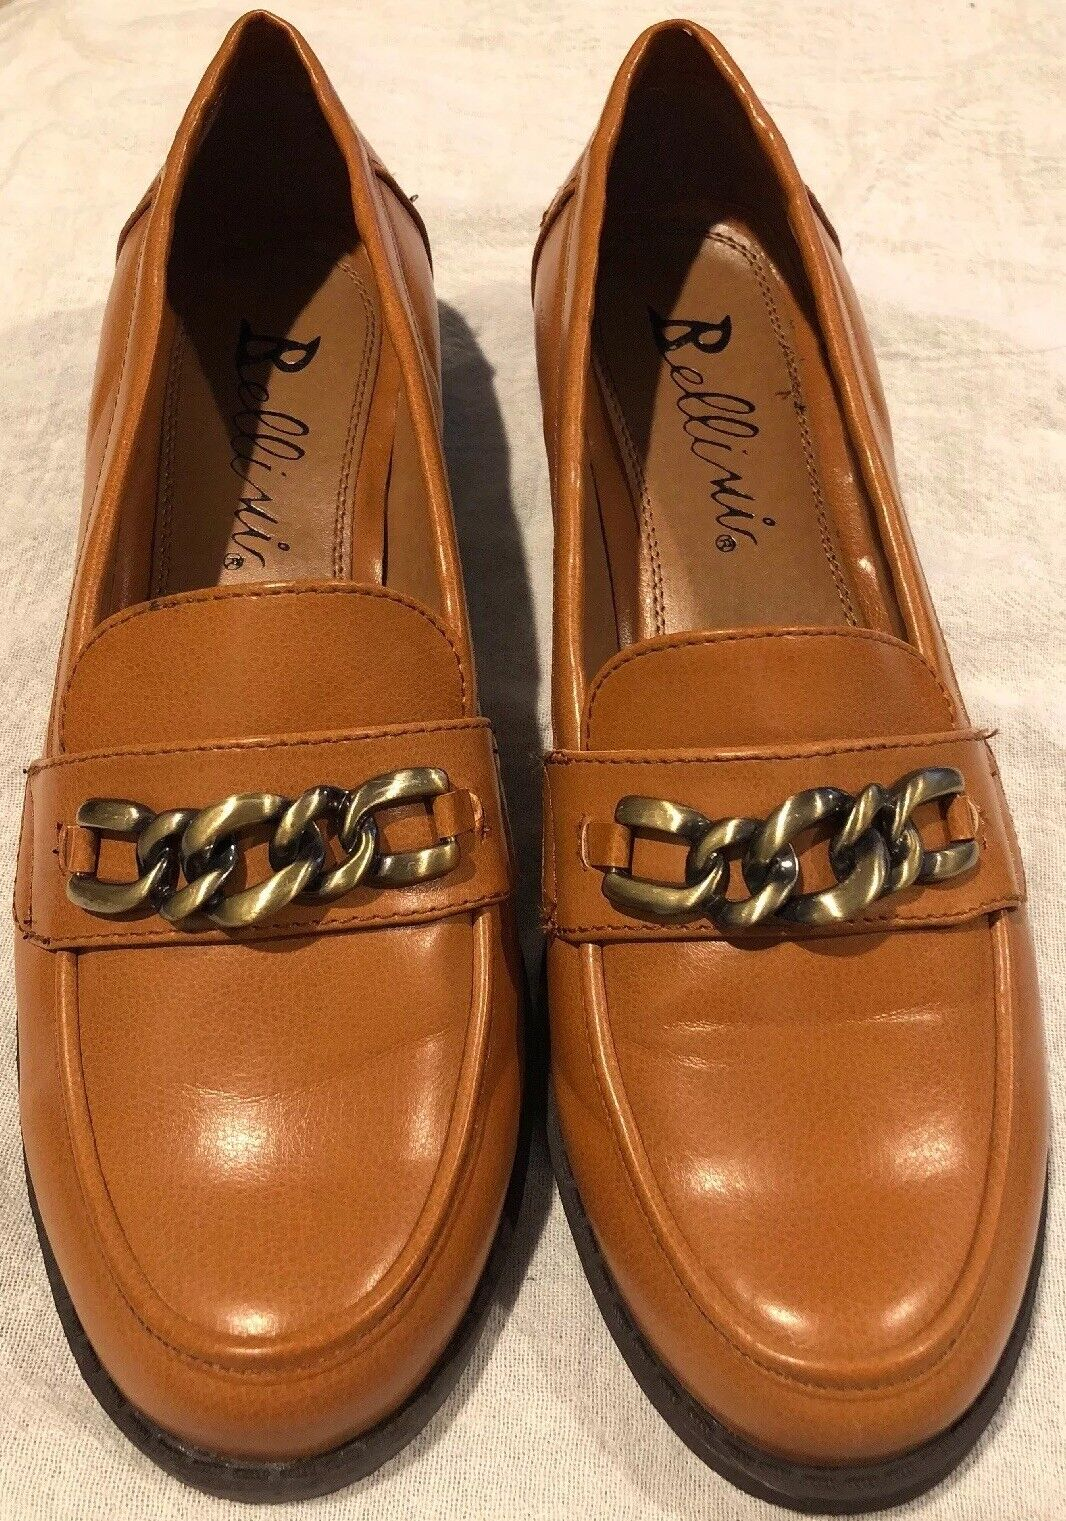 Bellini Women's Slip On Dress shoes Mustard Size 7.5 Augusta NEW Low Heel Loafer